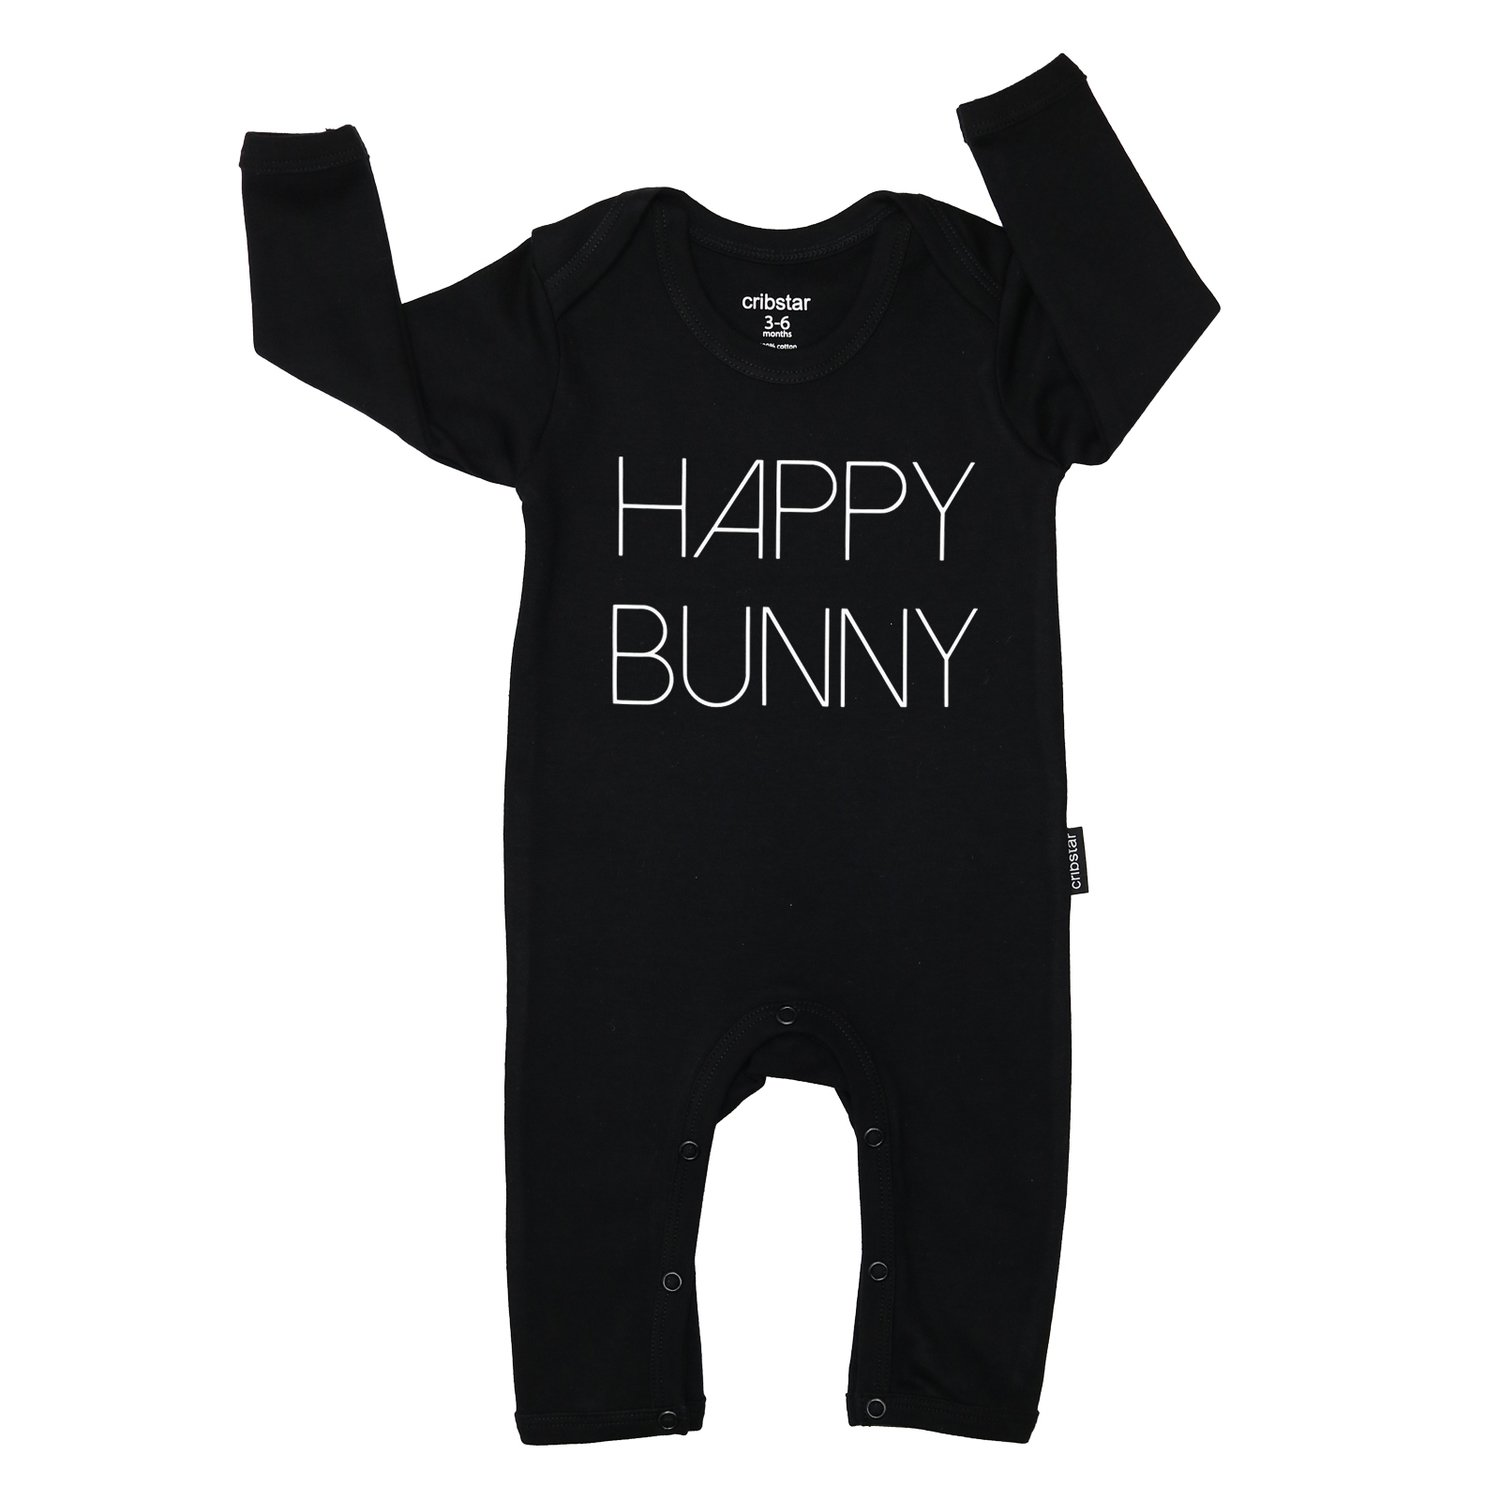 Cribstar Happy Bunny Baby Romper - Black